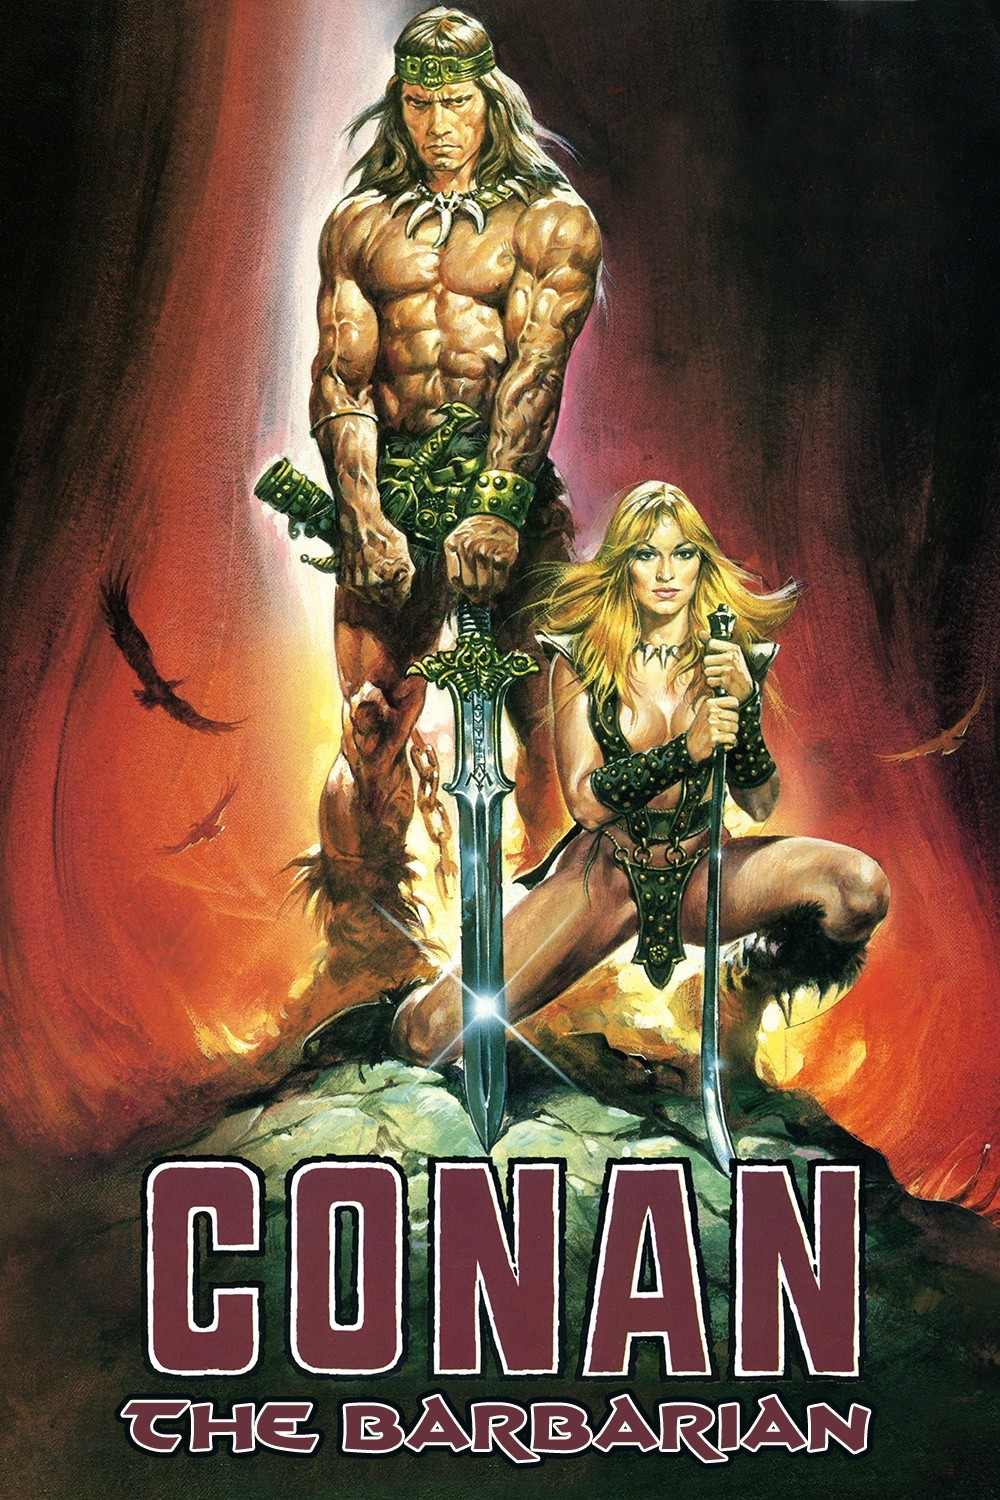 Conan the barbarian number 24